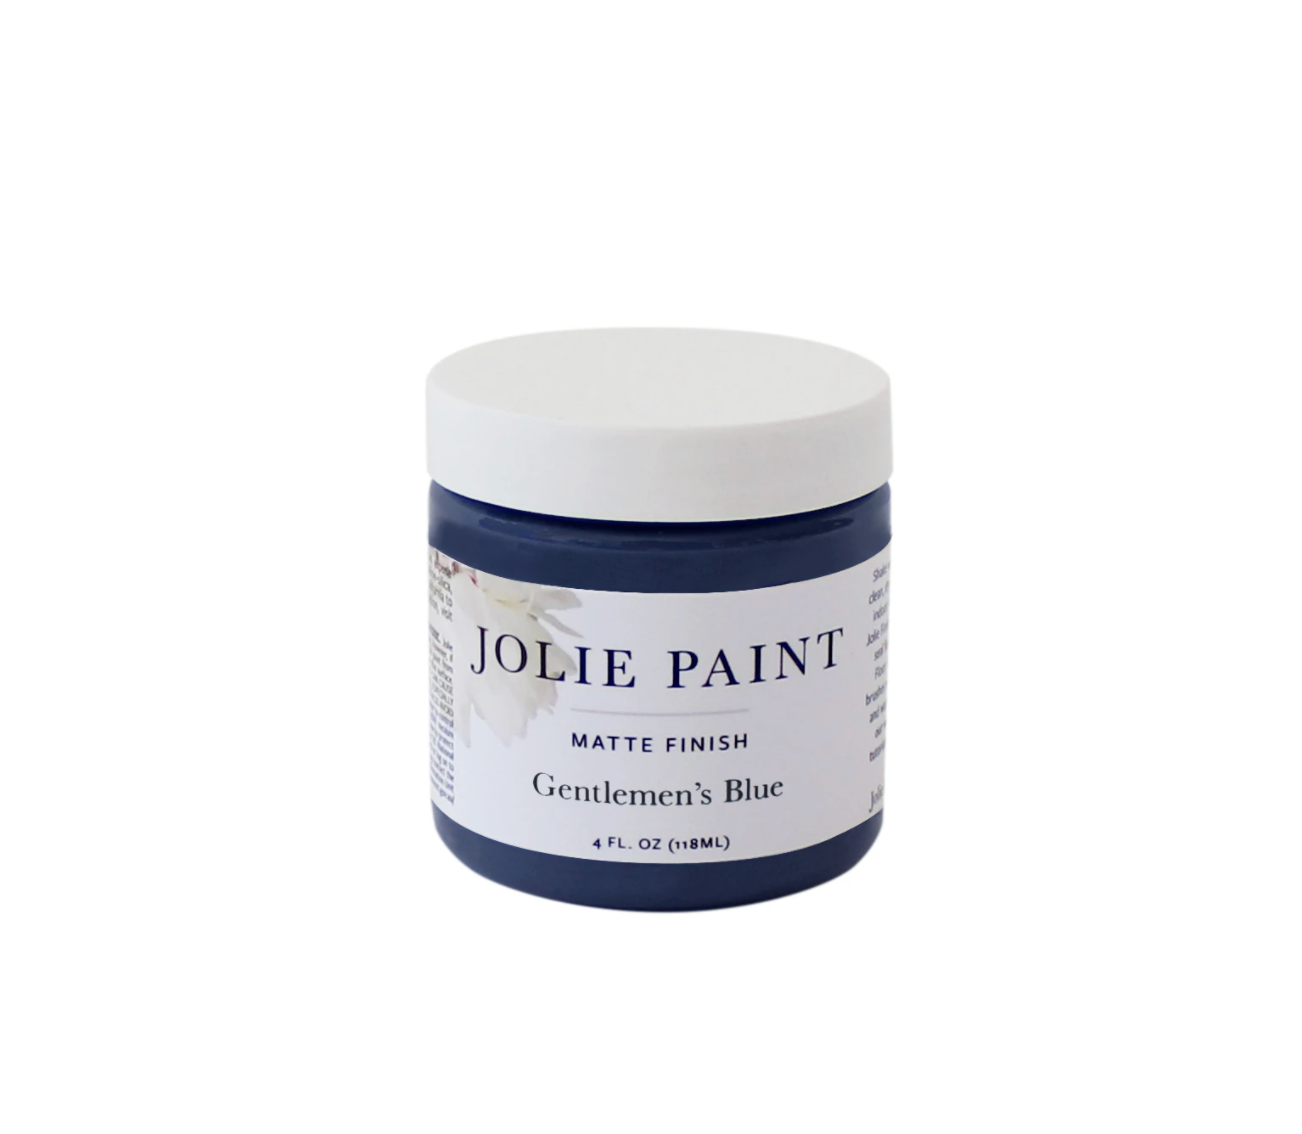 Jolie 4 oz. paint (Gentleman